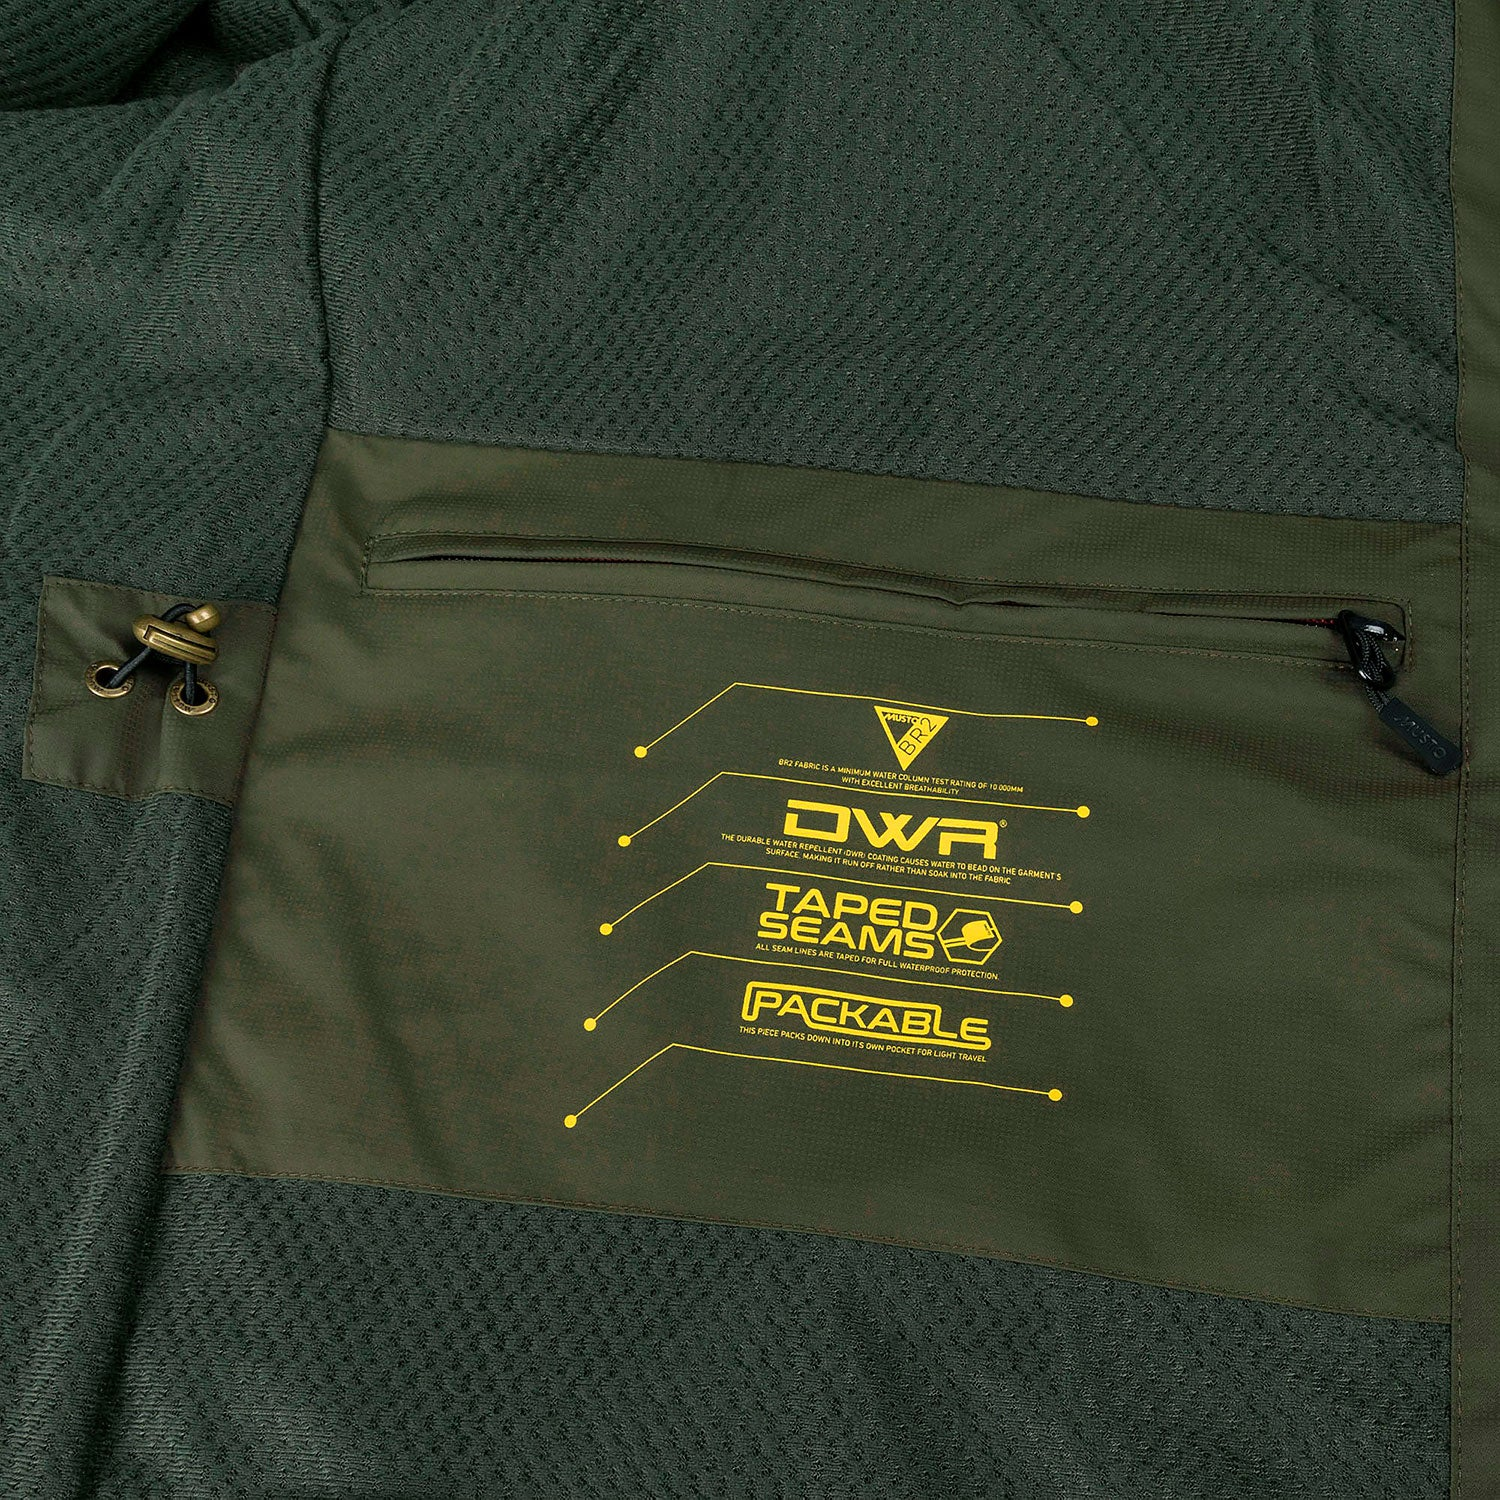 DWR Waterproof with taped seams, Packable